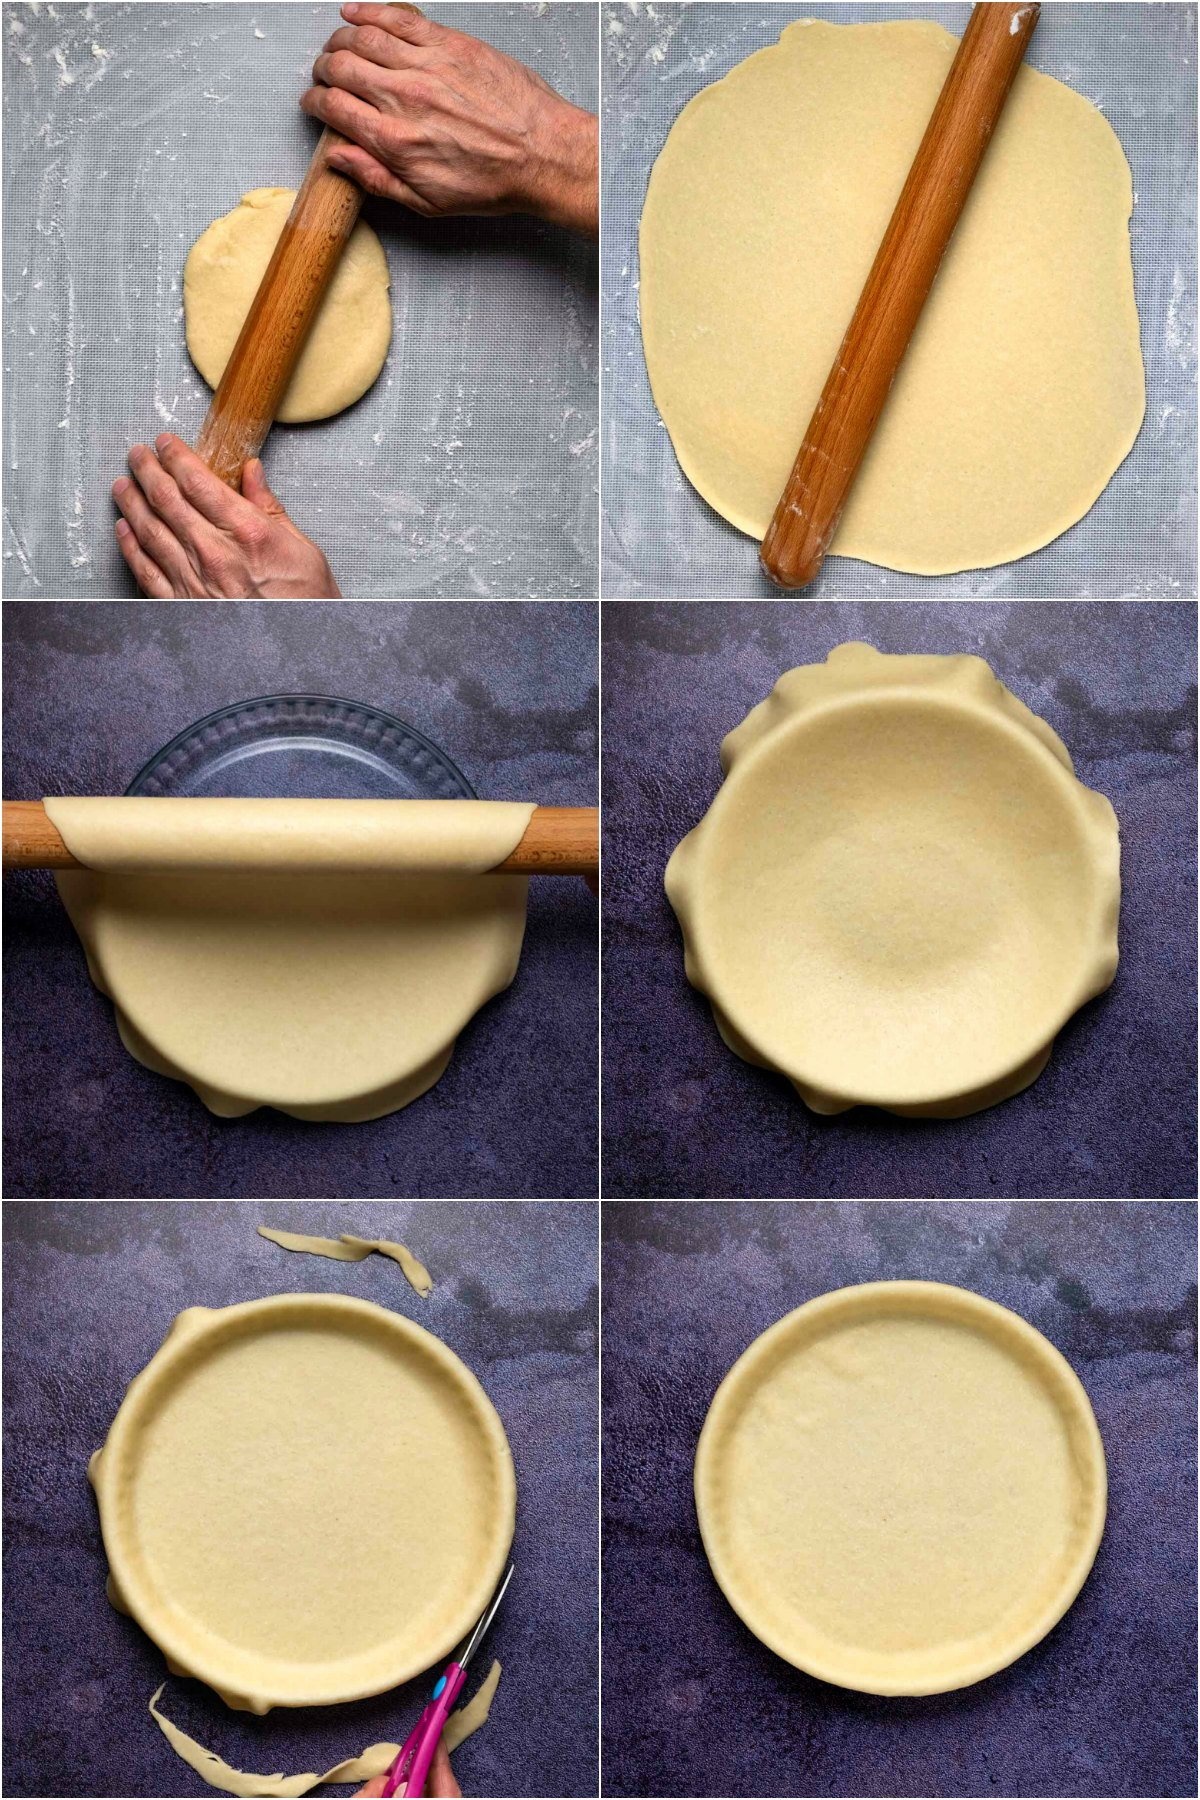 Step by step process photo collage of making a coconut oil pie crust.